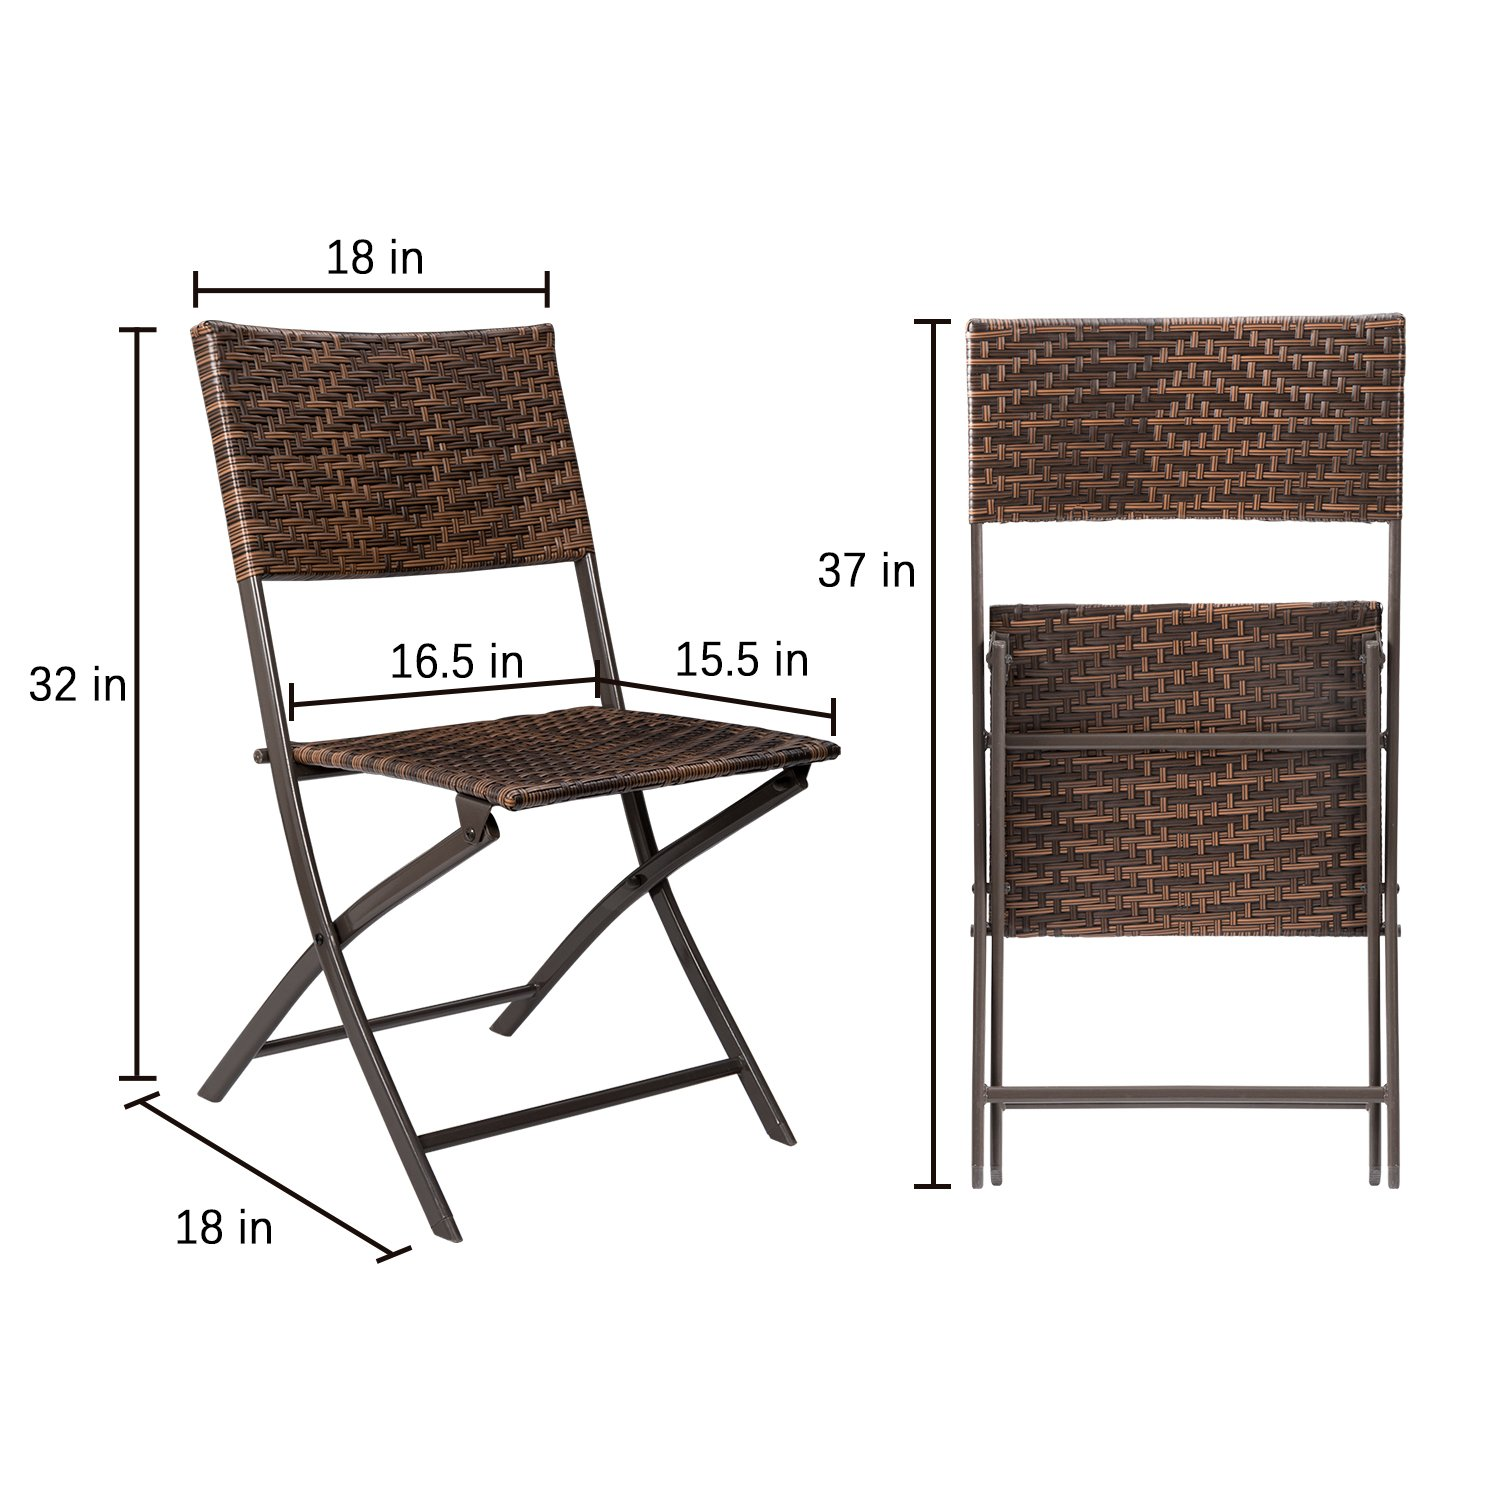 Devoko Rattan Patio Dining Chair 4 Pieces Space Saving Deck Camping Chairs Garden Pool Beach Lawn Using Outdoor Folding Chair (Brown) by Devoko (Image #7)